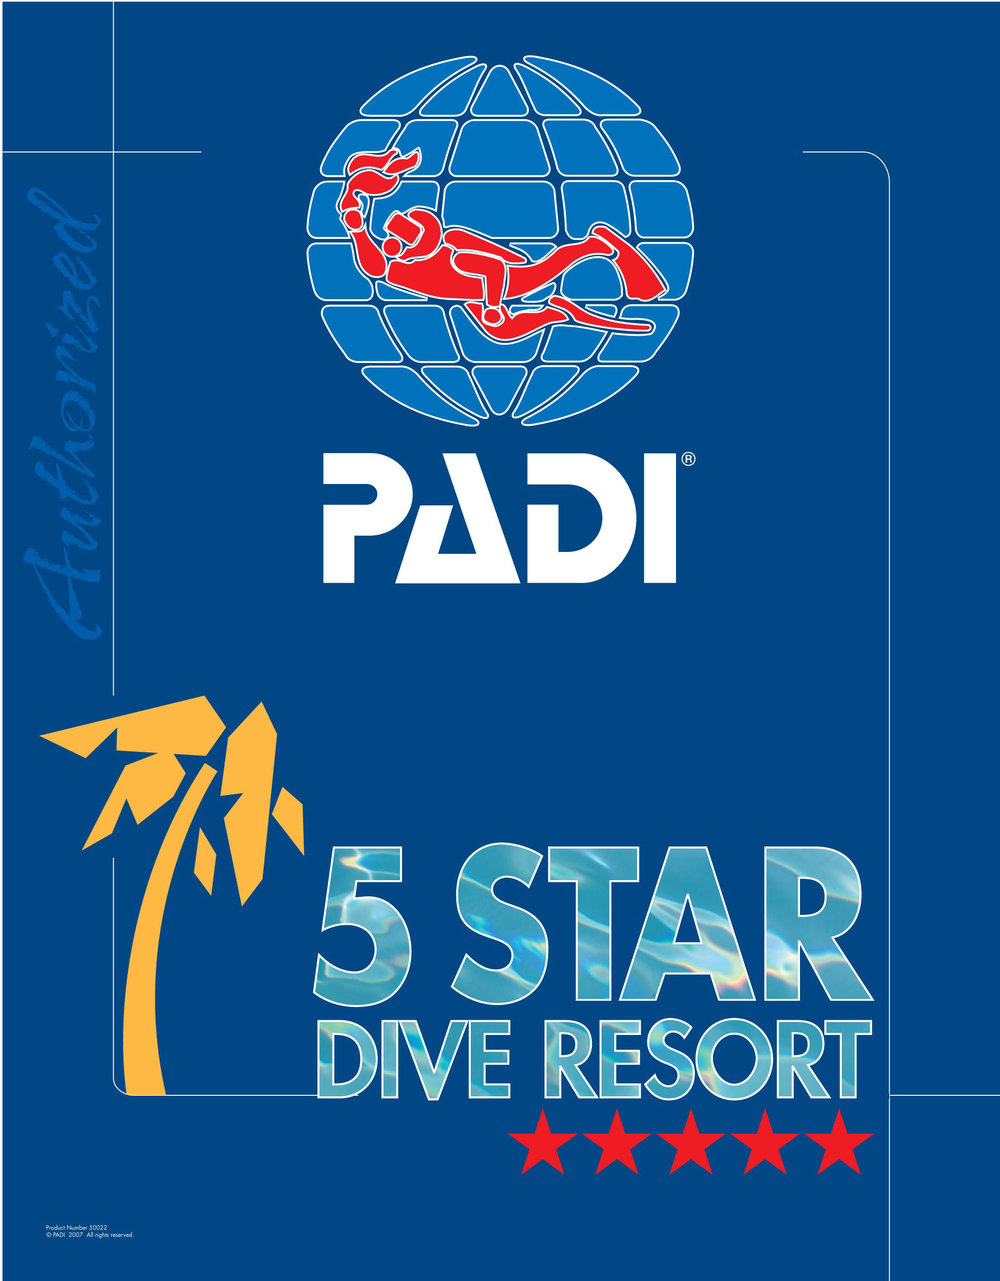 50022_5Star_DiveResort.jpg